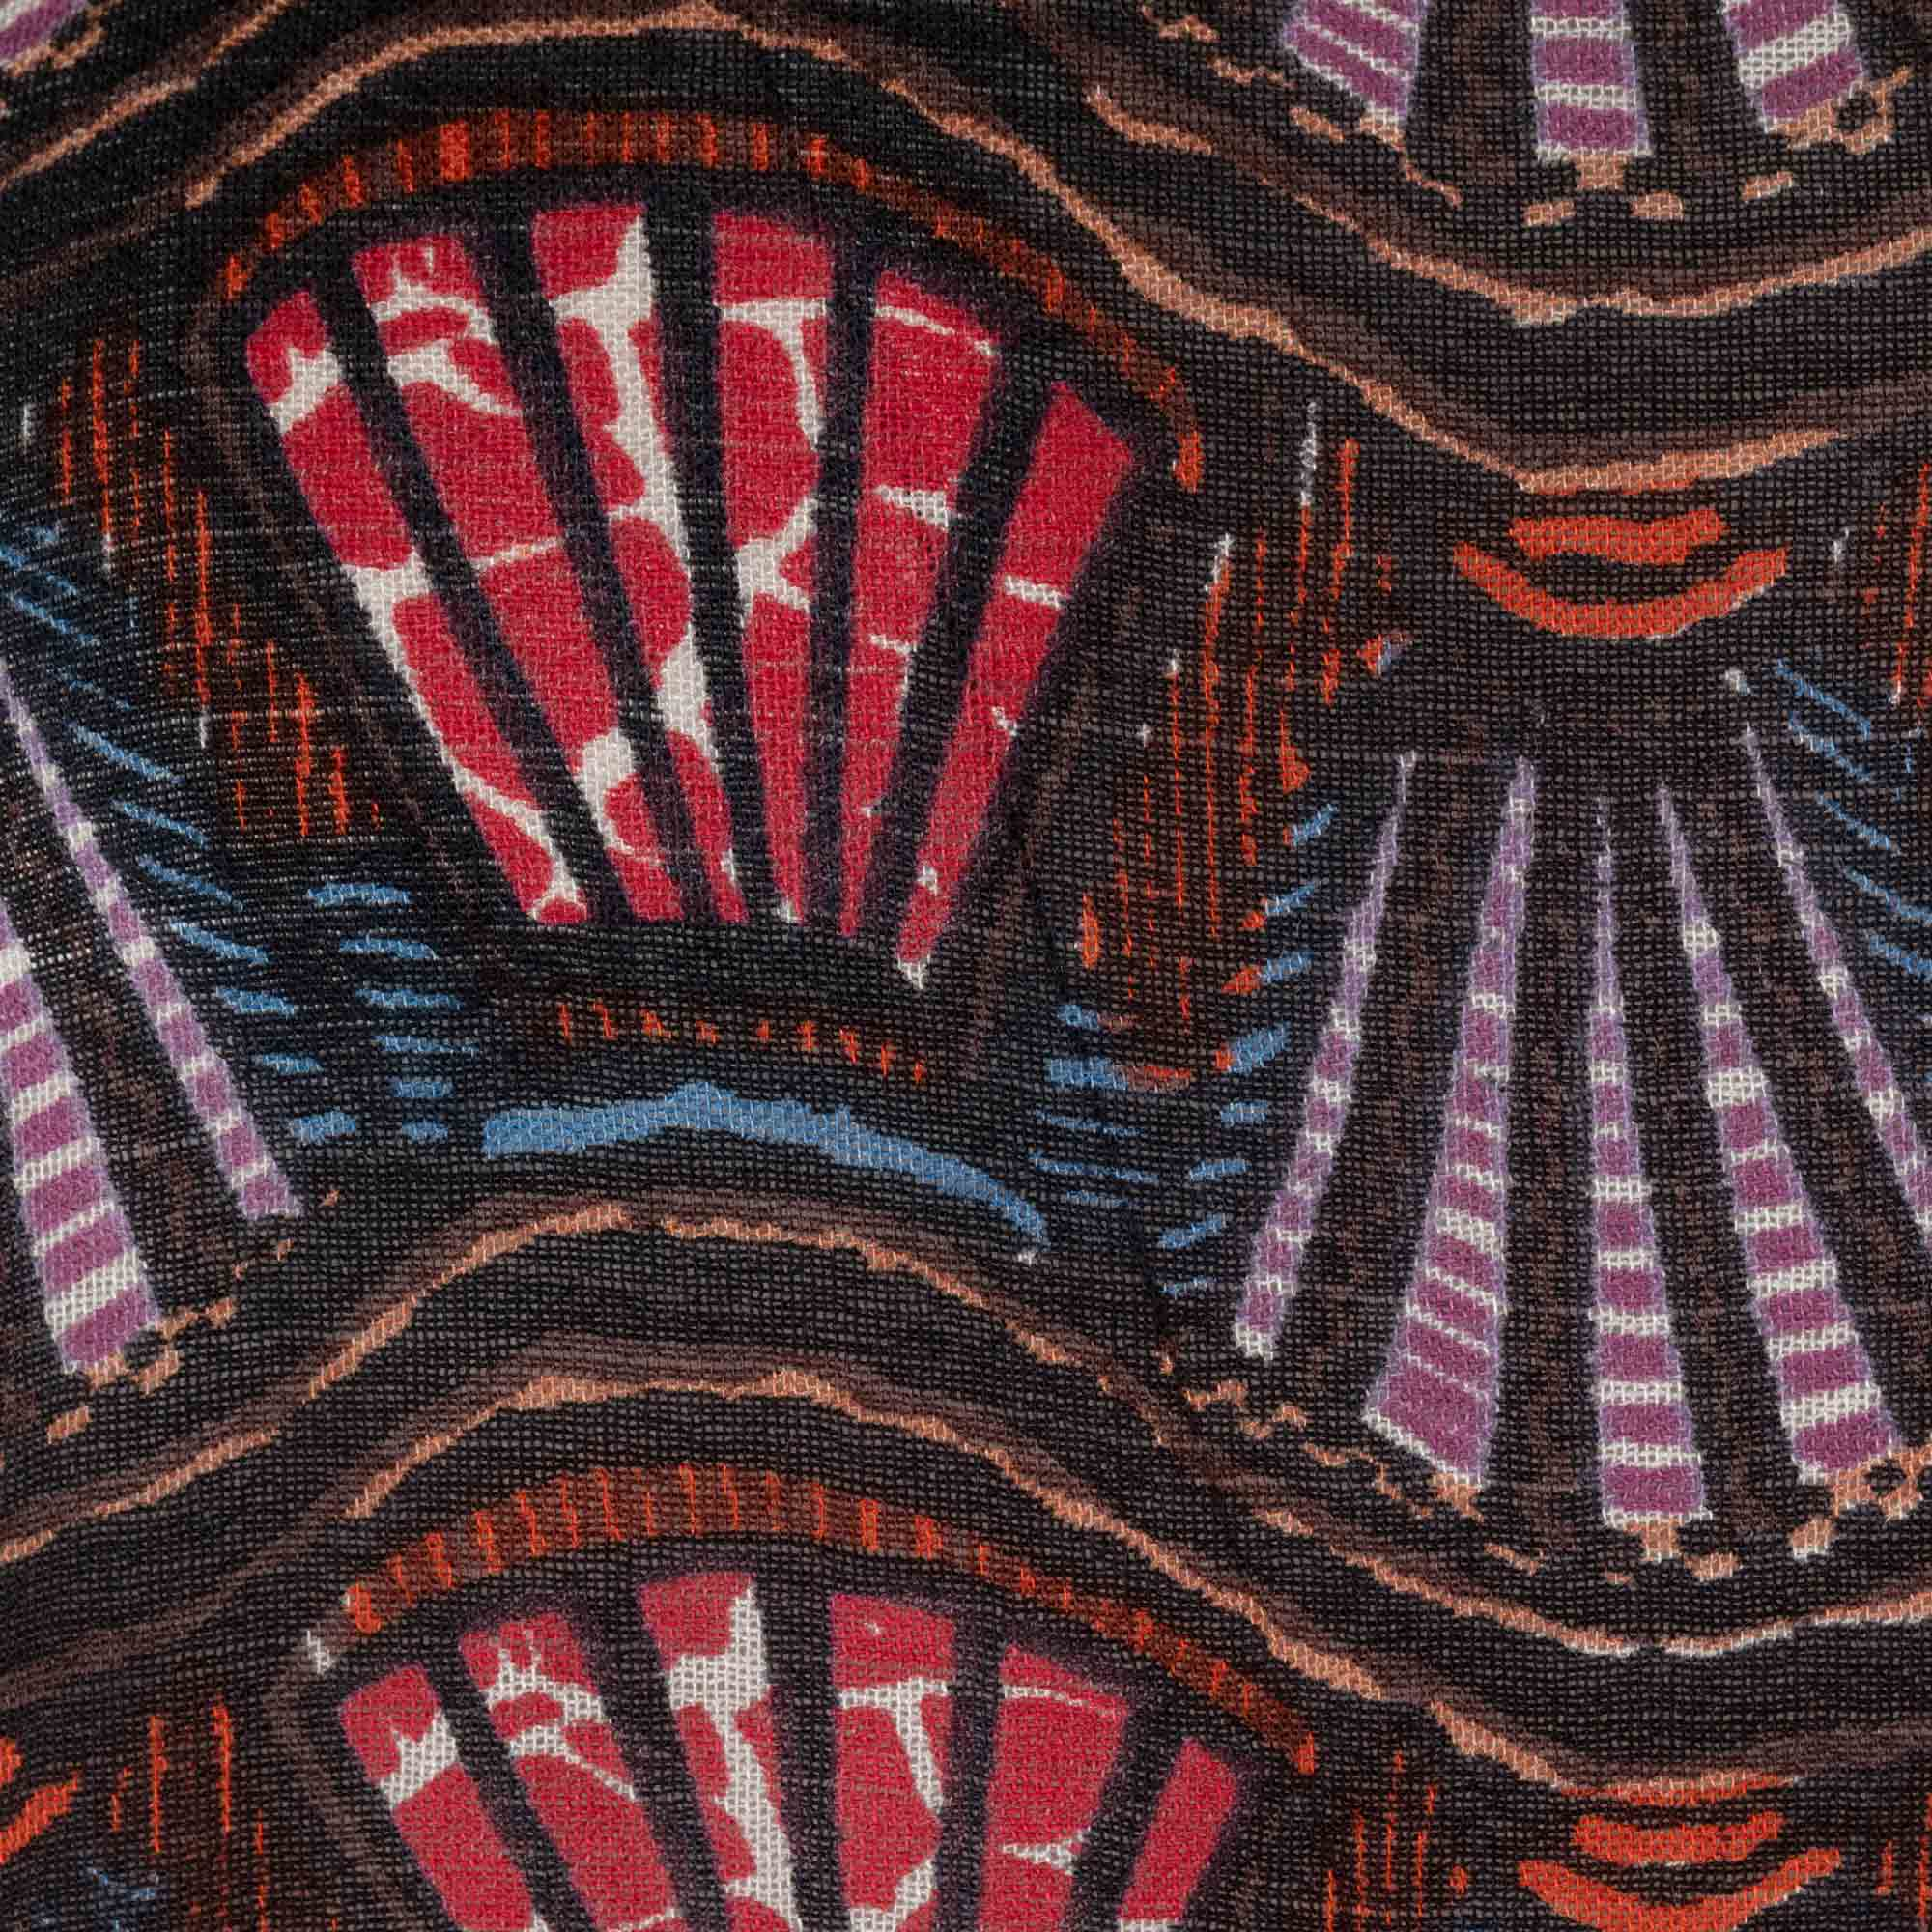 A close up image of the pattern reveals the detail and qaulity of the intricate print